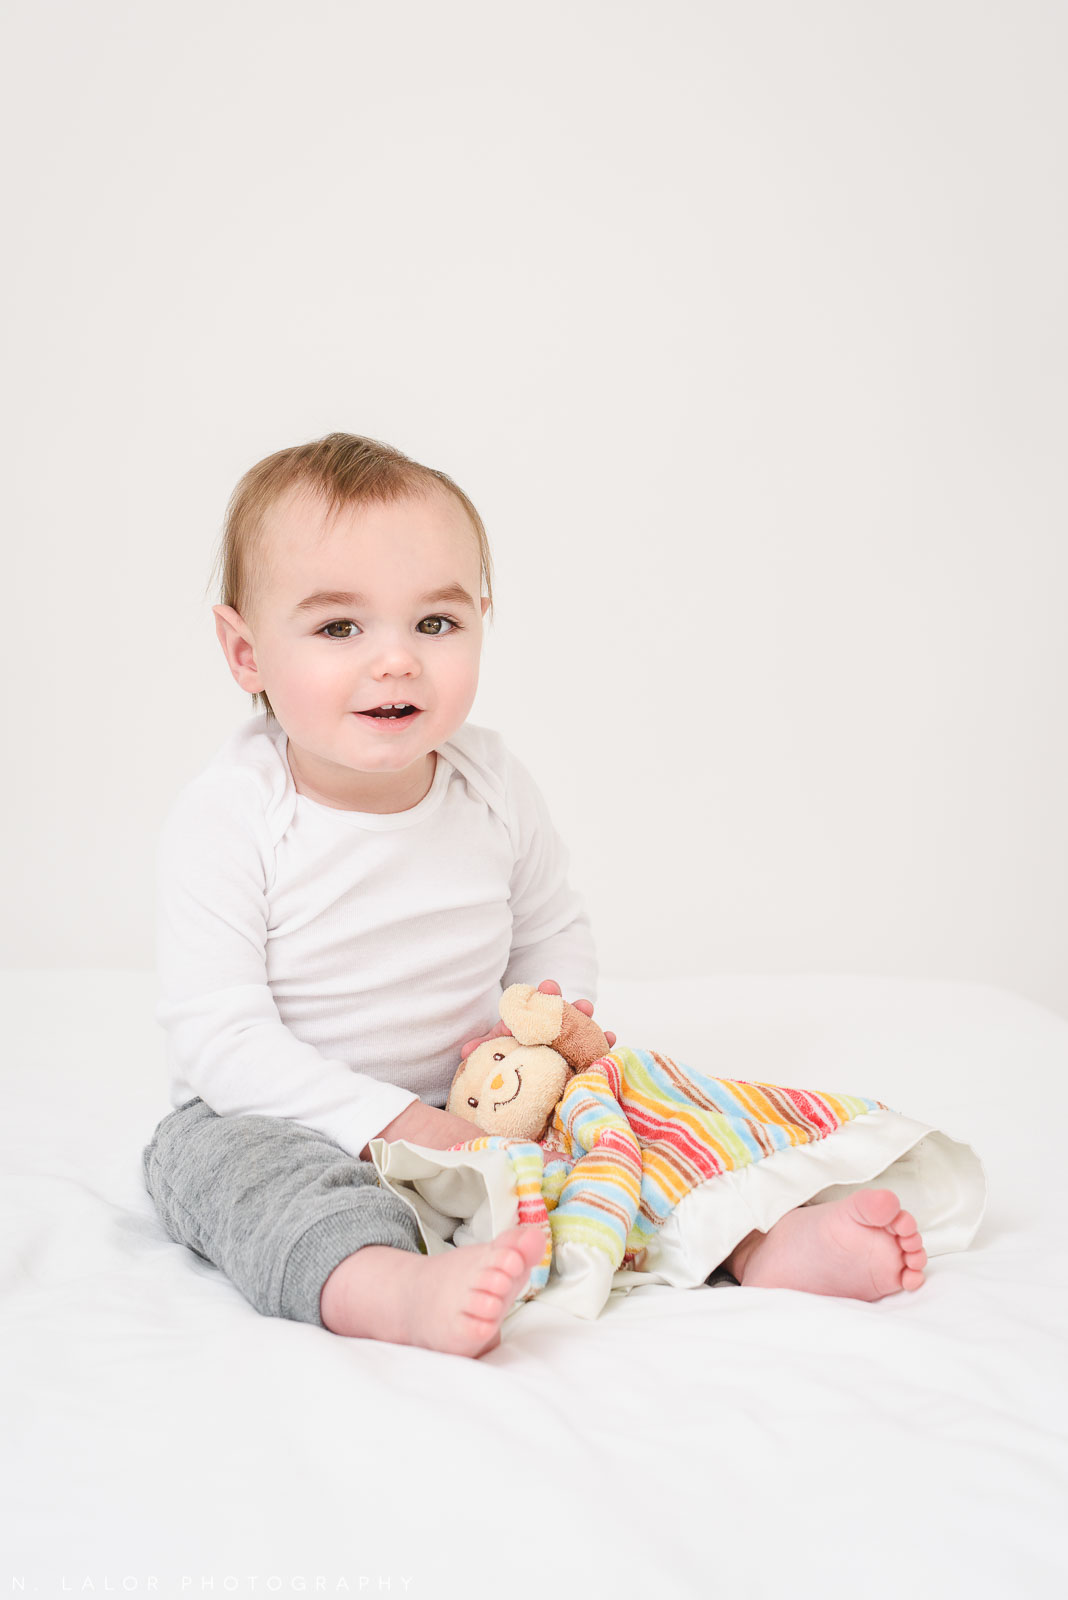 Image of baby sitting with stuffed animal during photo-shoot. Milestone Sessions by N. Lalor Photography. Studio in Greenwich, Connecticut.